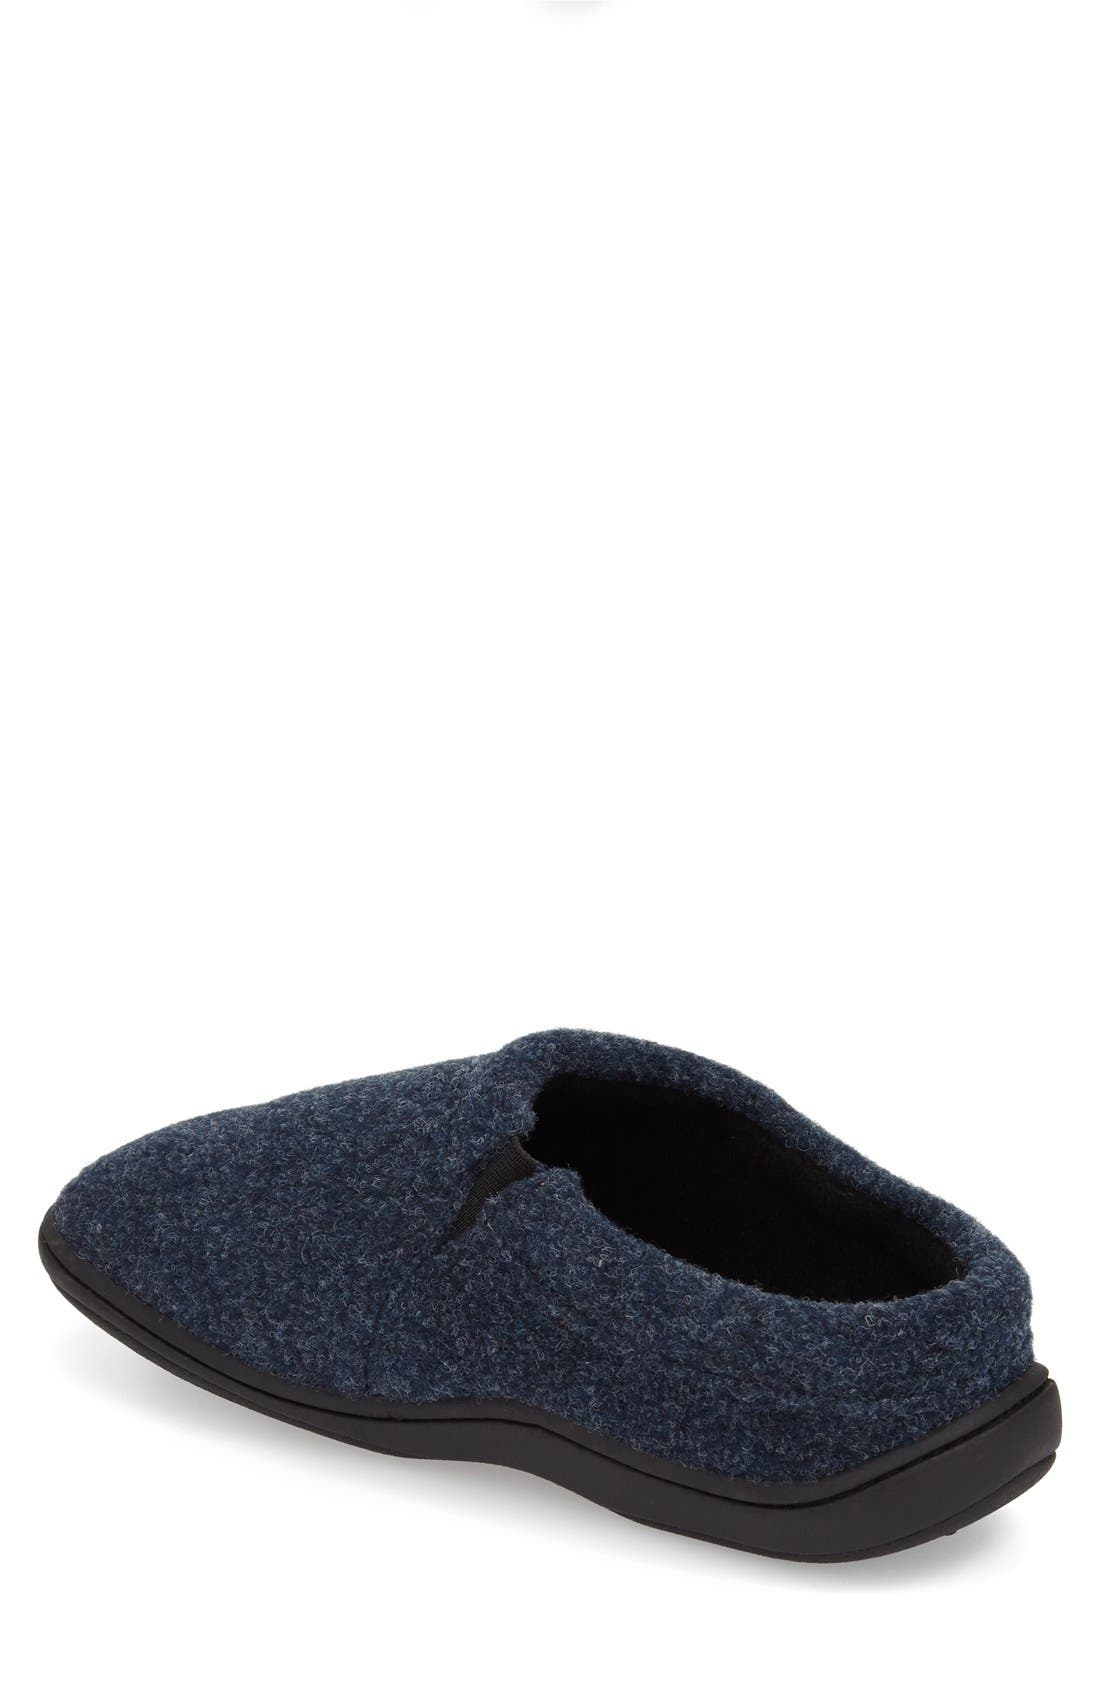 'Digby' Slipper,                             Alternate thumbnail 18, color,